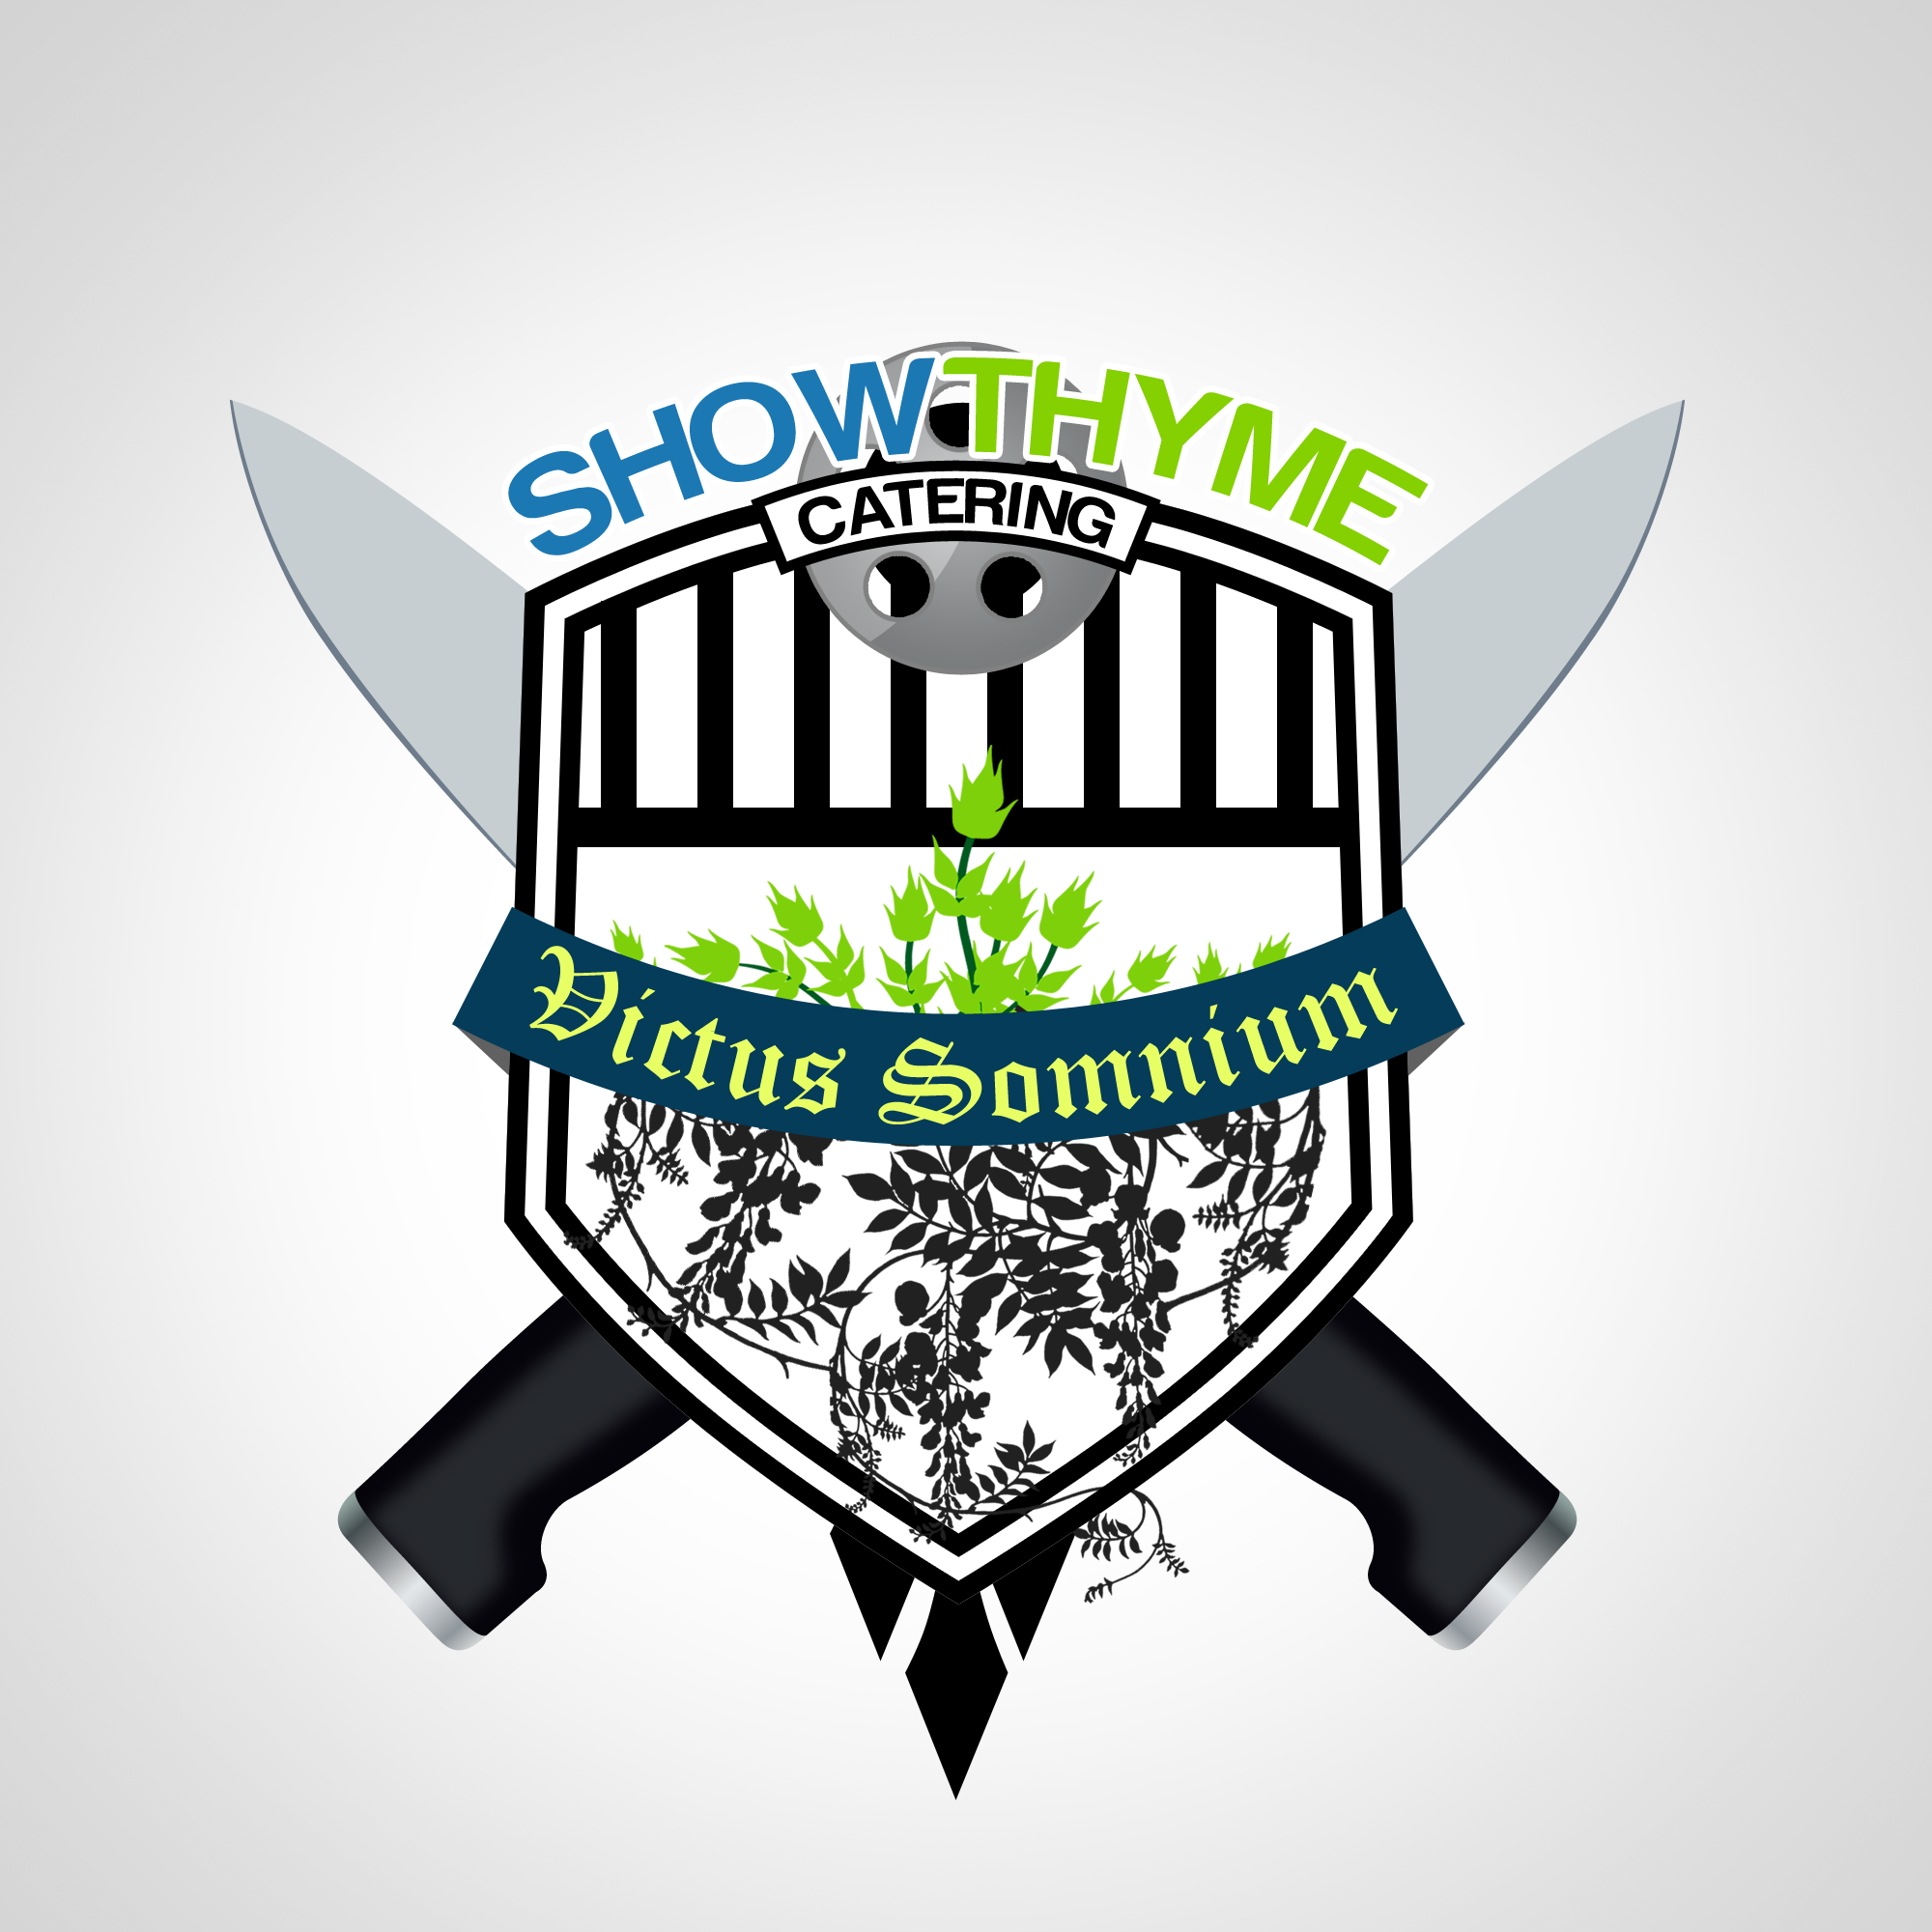 Logo Design by Kenneth Joel - Entry No. 25 in the Logo Design Contest Showthyme Catering Logo Design.